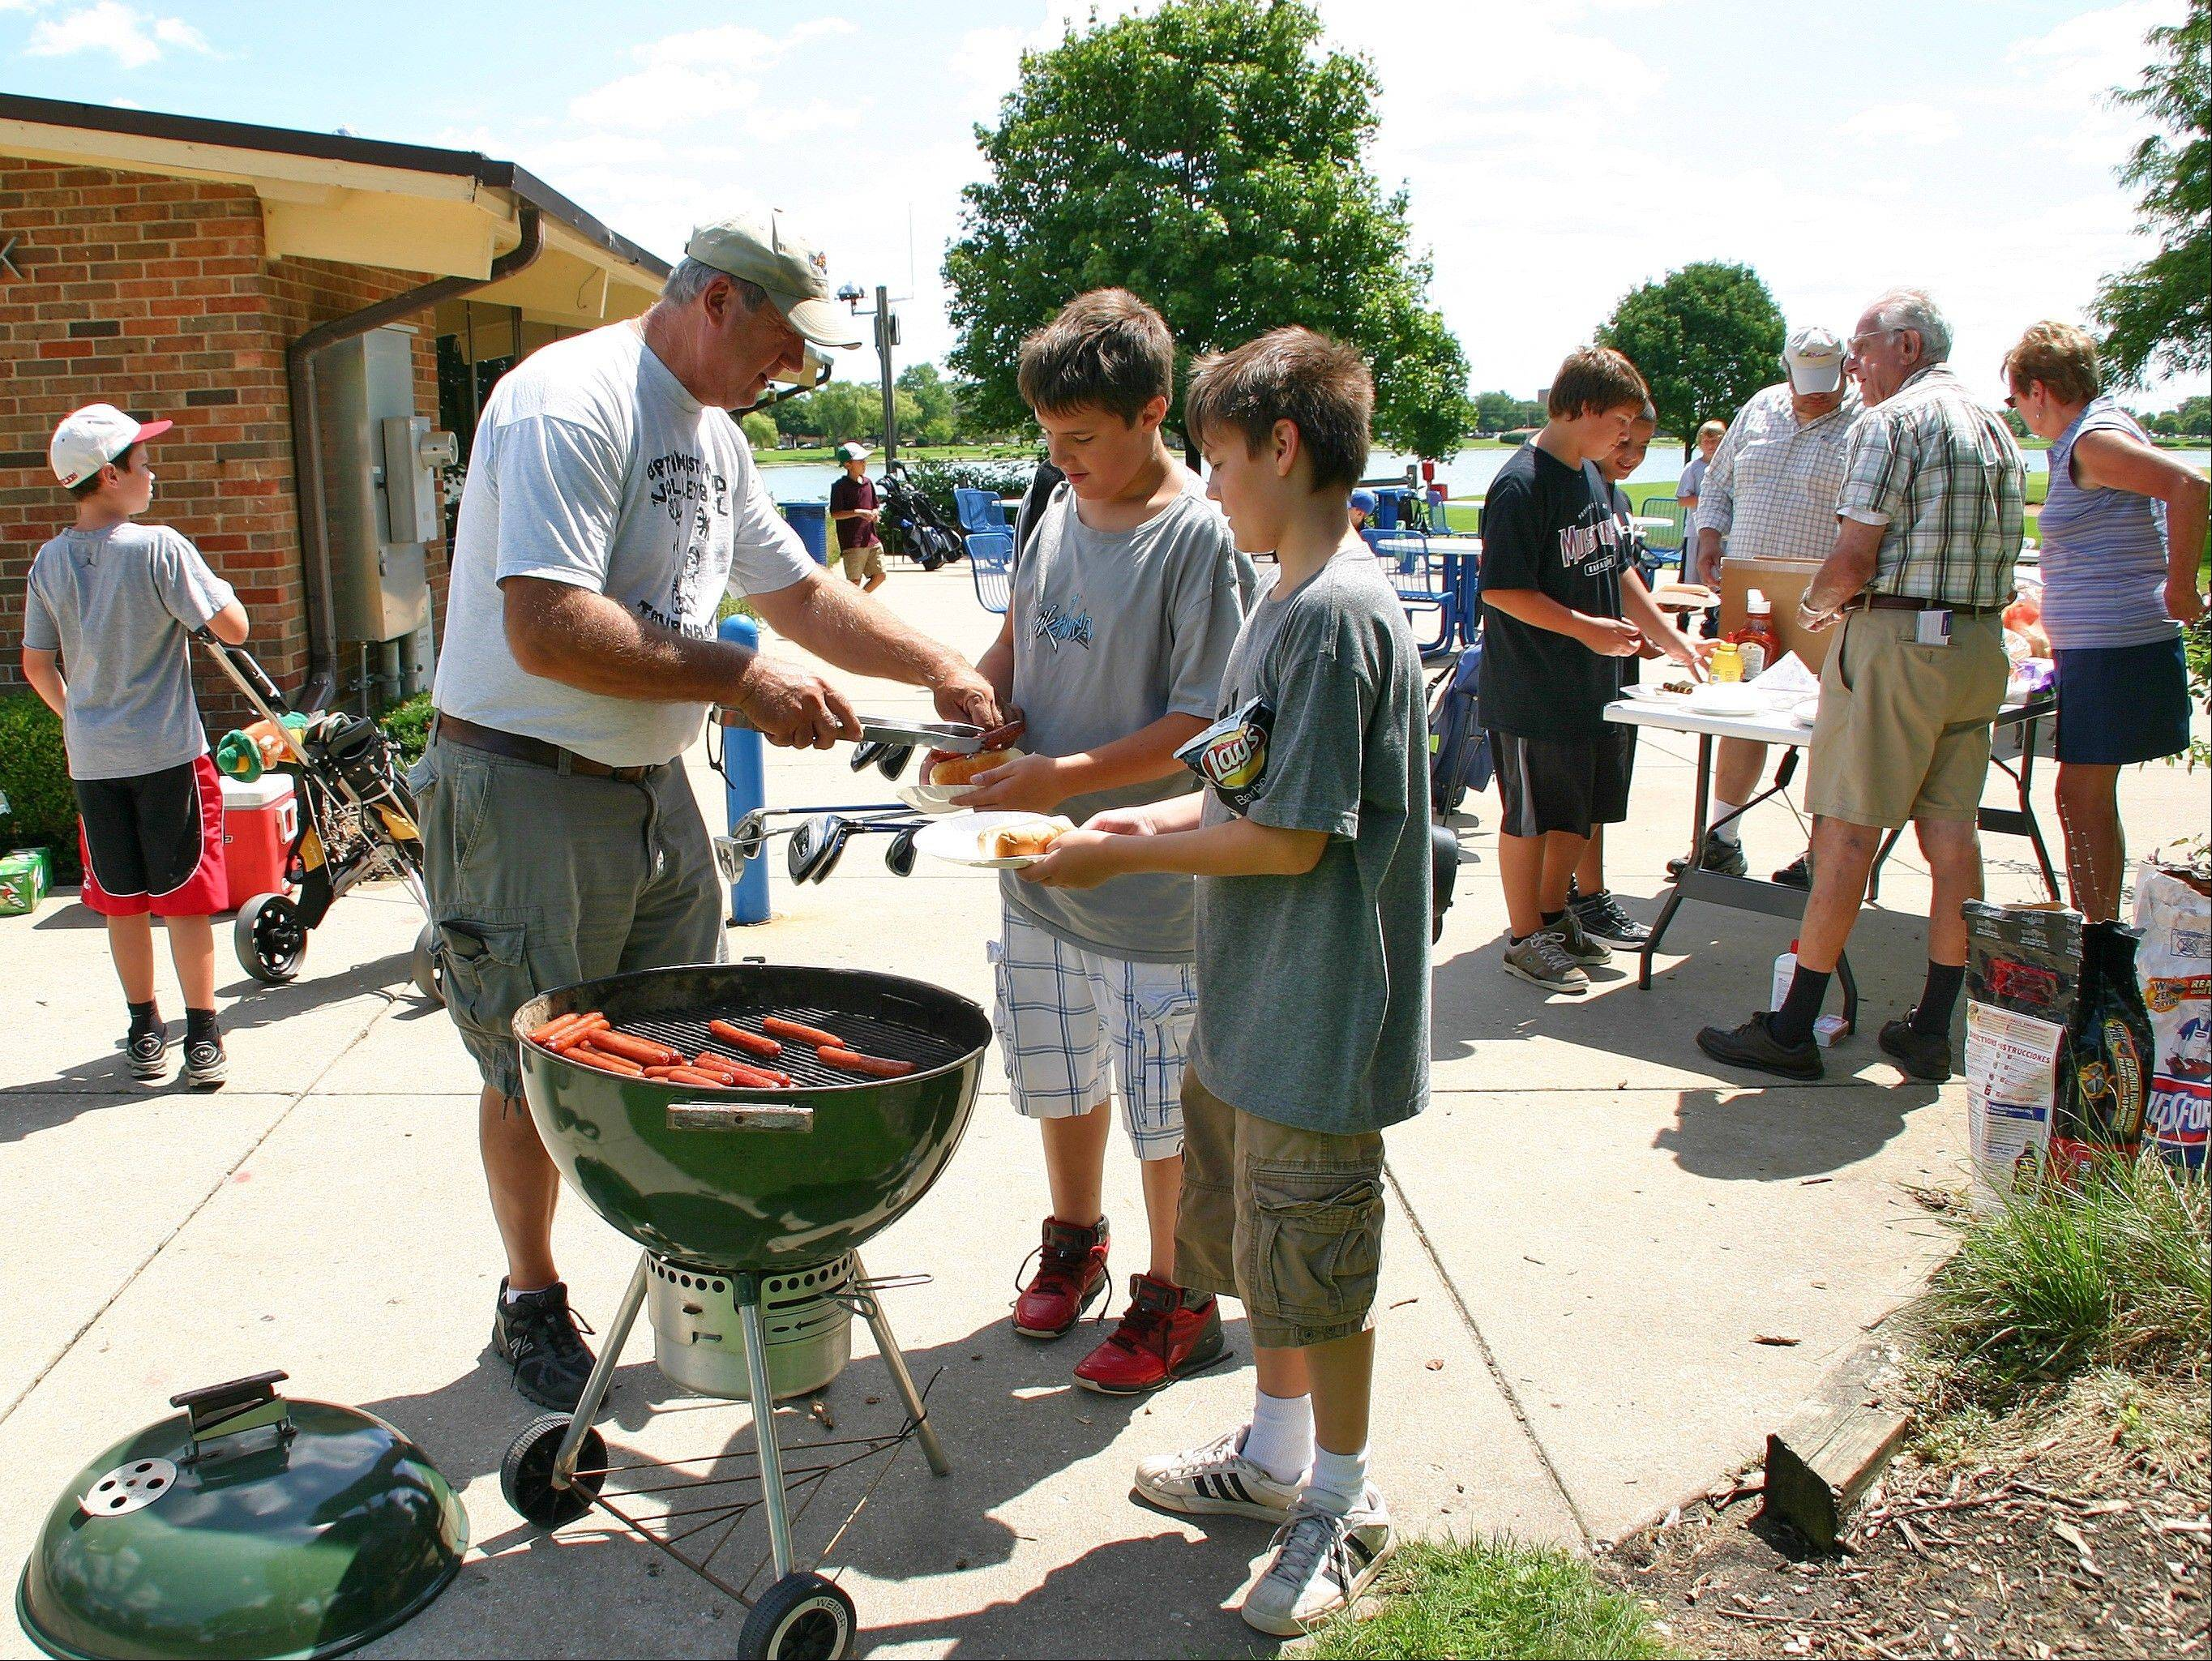 After 18 holes, the golfers were treated to a hot dog lunch at the eighth annual Optimist Club Youth Golf Outing on Aug. 10.